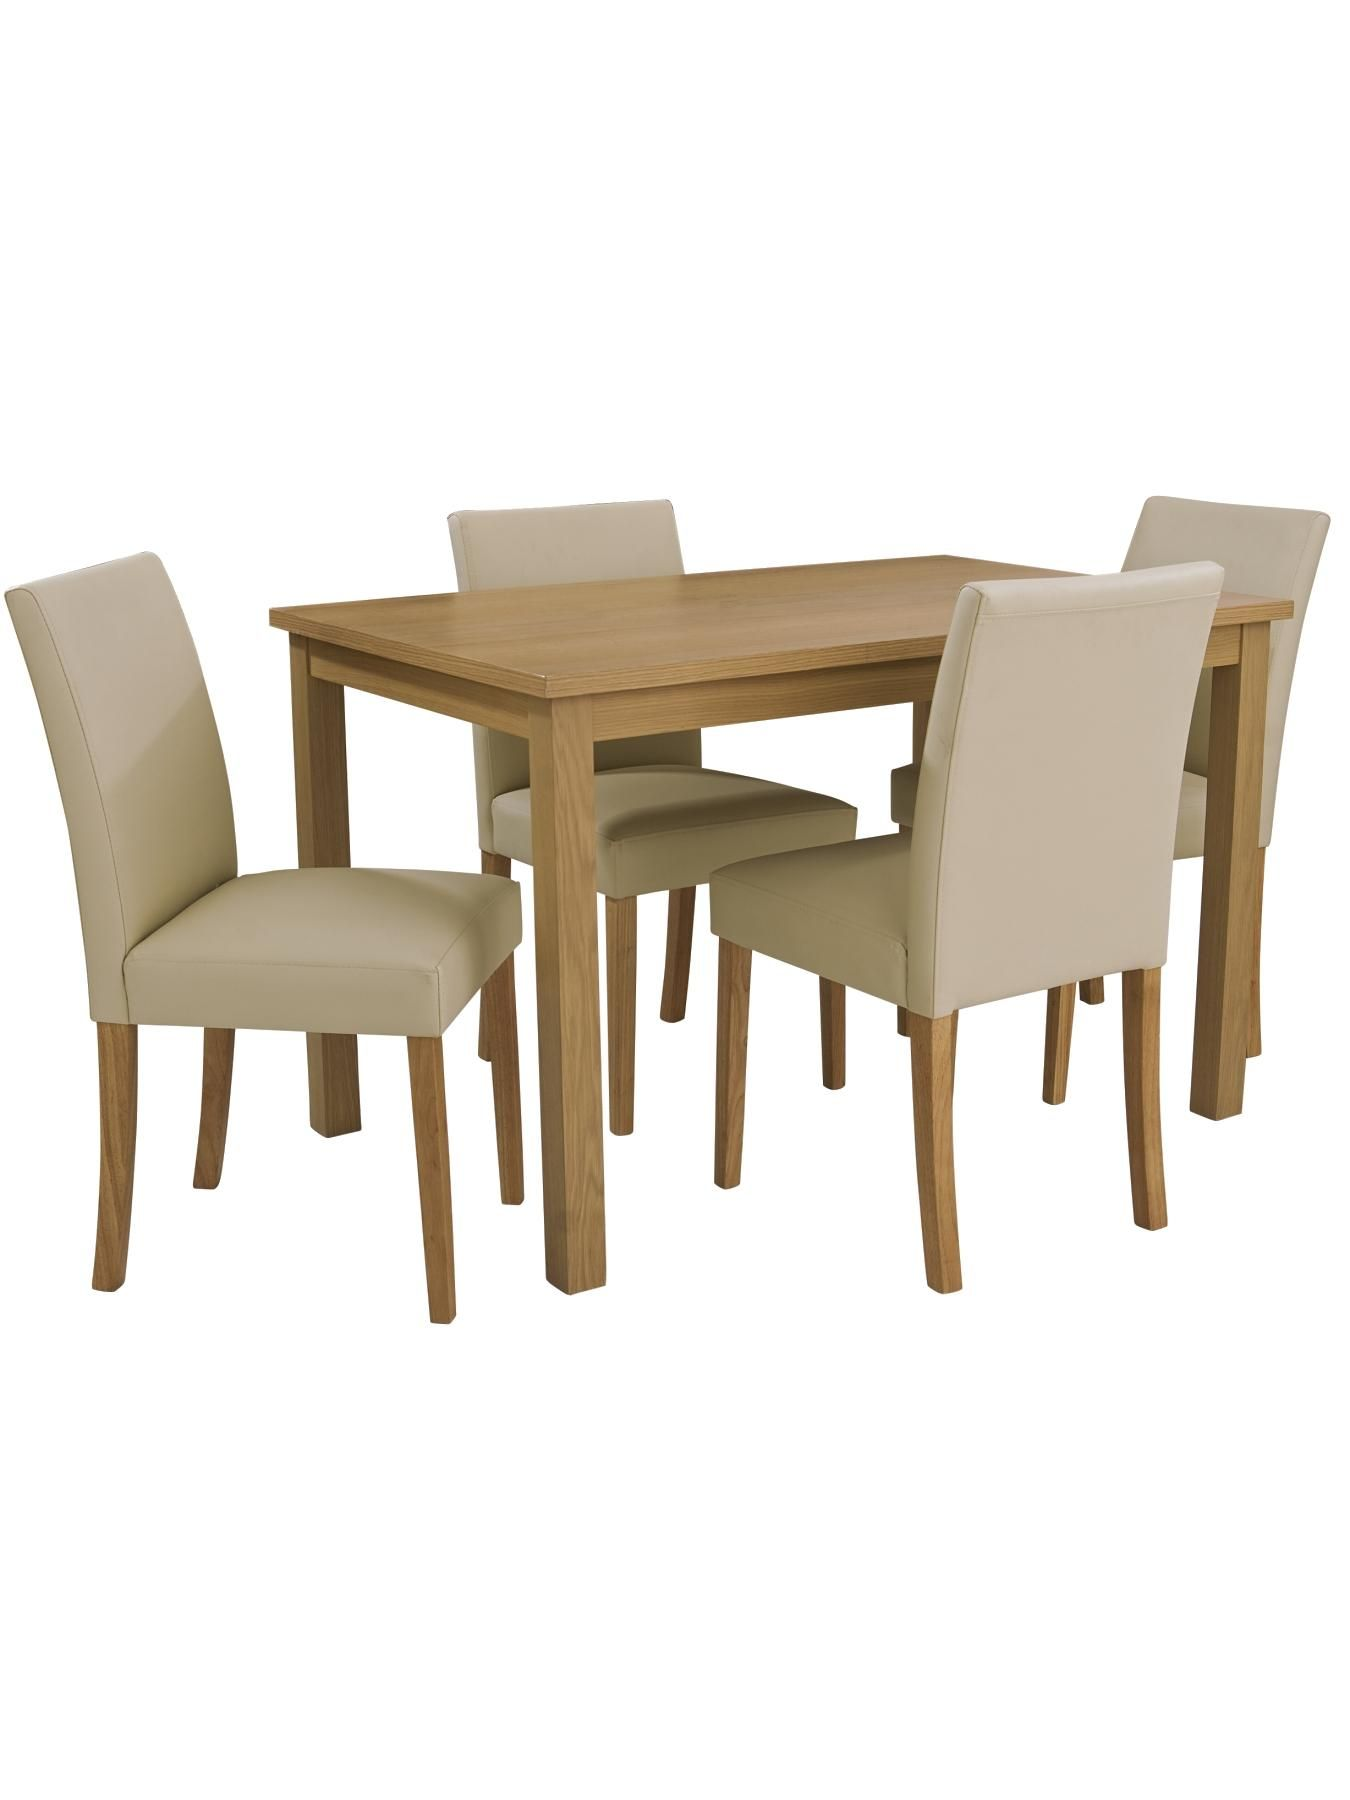 Dining Table And Chair Set Uk Mesh Lounge Womens Mens Kids Fashion Furniture Electricals More Primo 120 Cm 4 Lucca Chairs Very Co